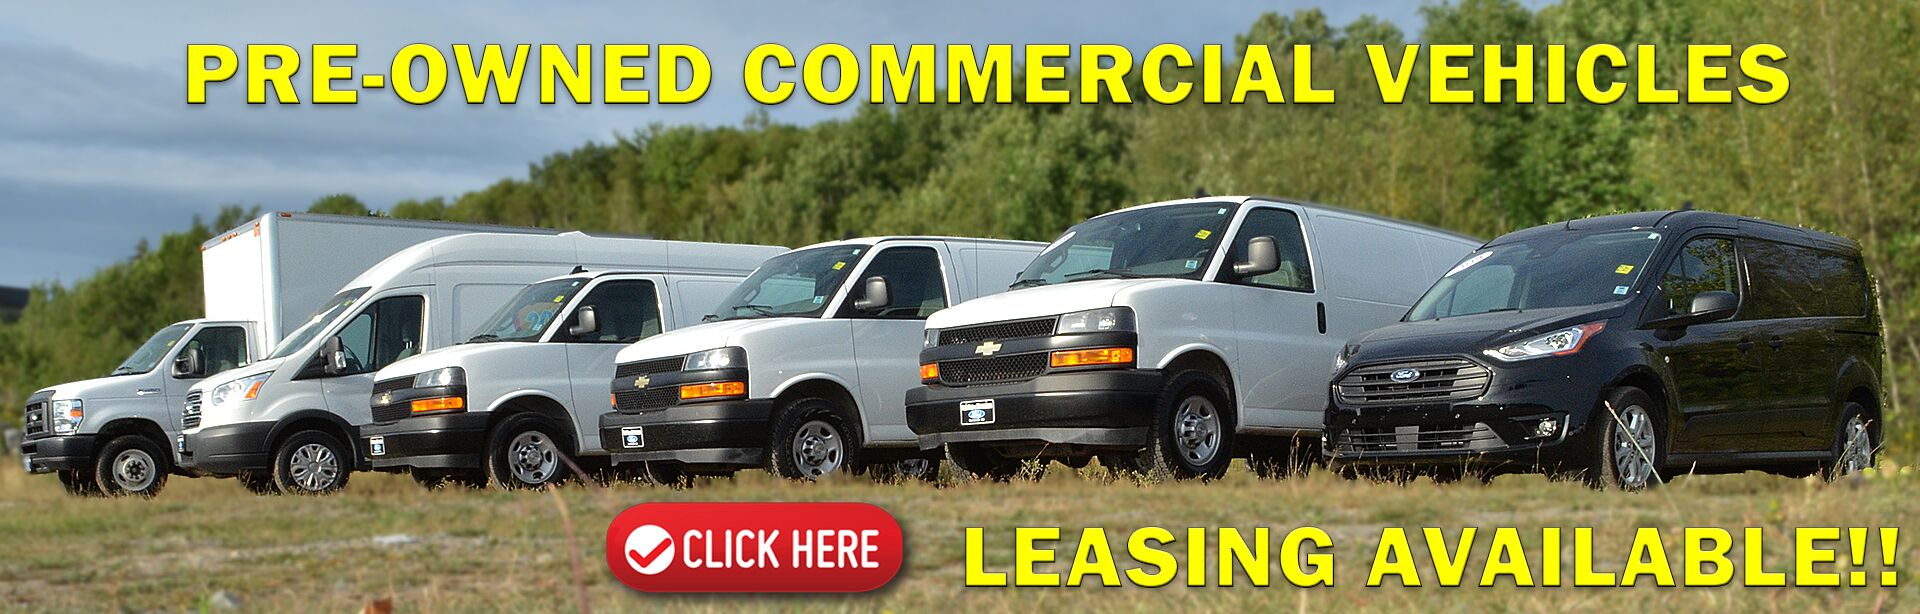 Pre-Owned Commercial